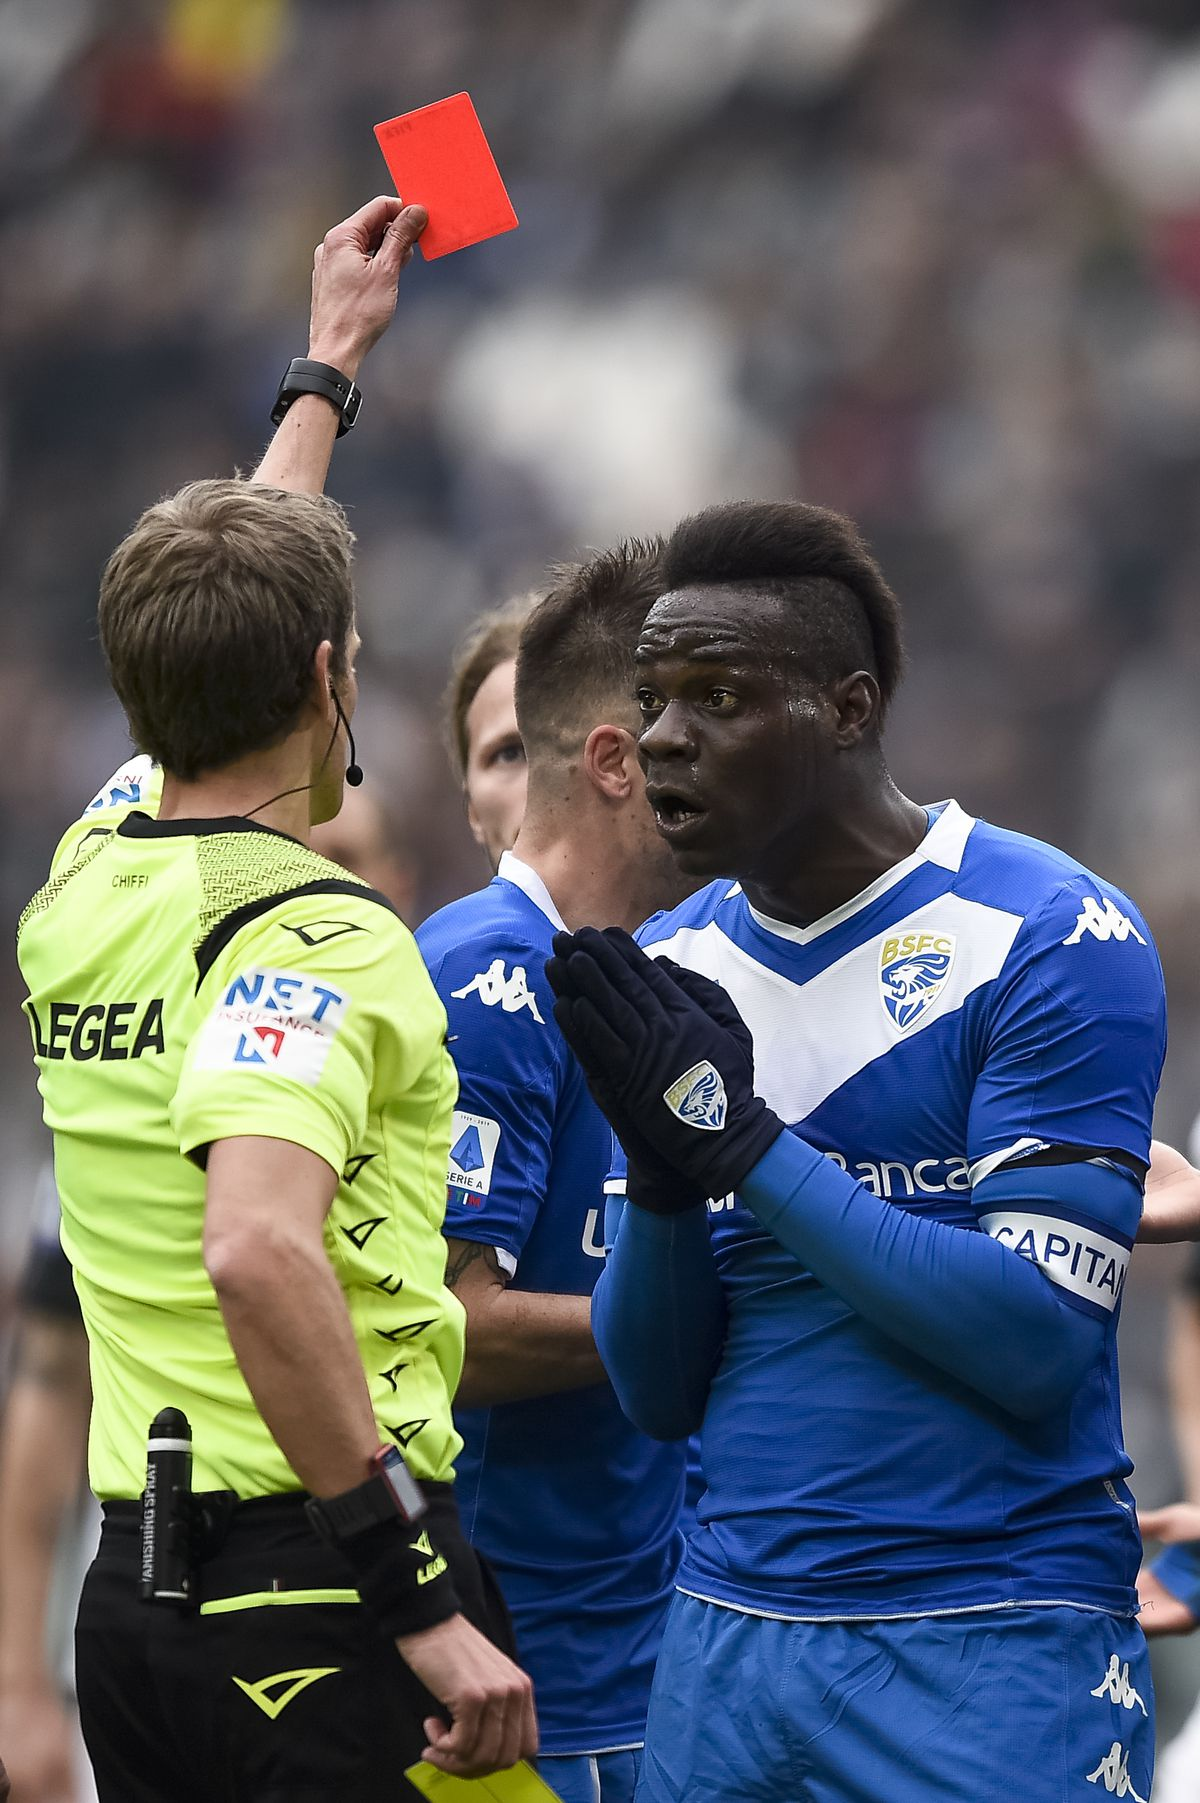 Referee Daniele Chiffi (L) shows red card to Florian Aye (...